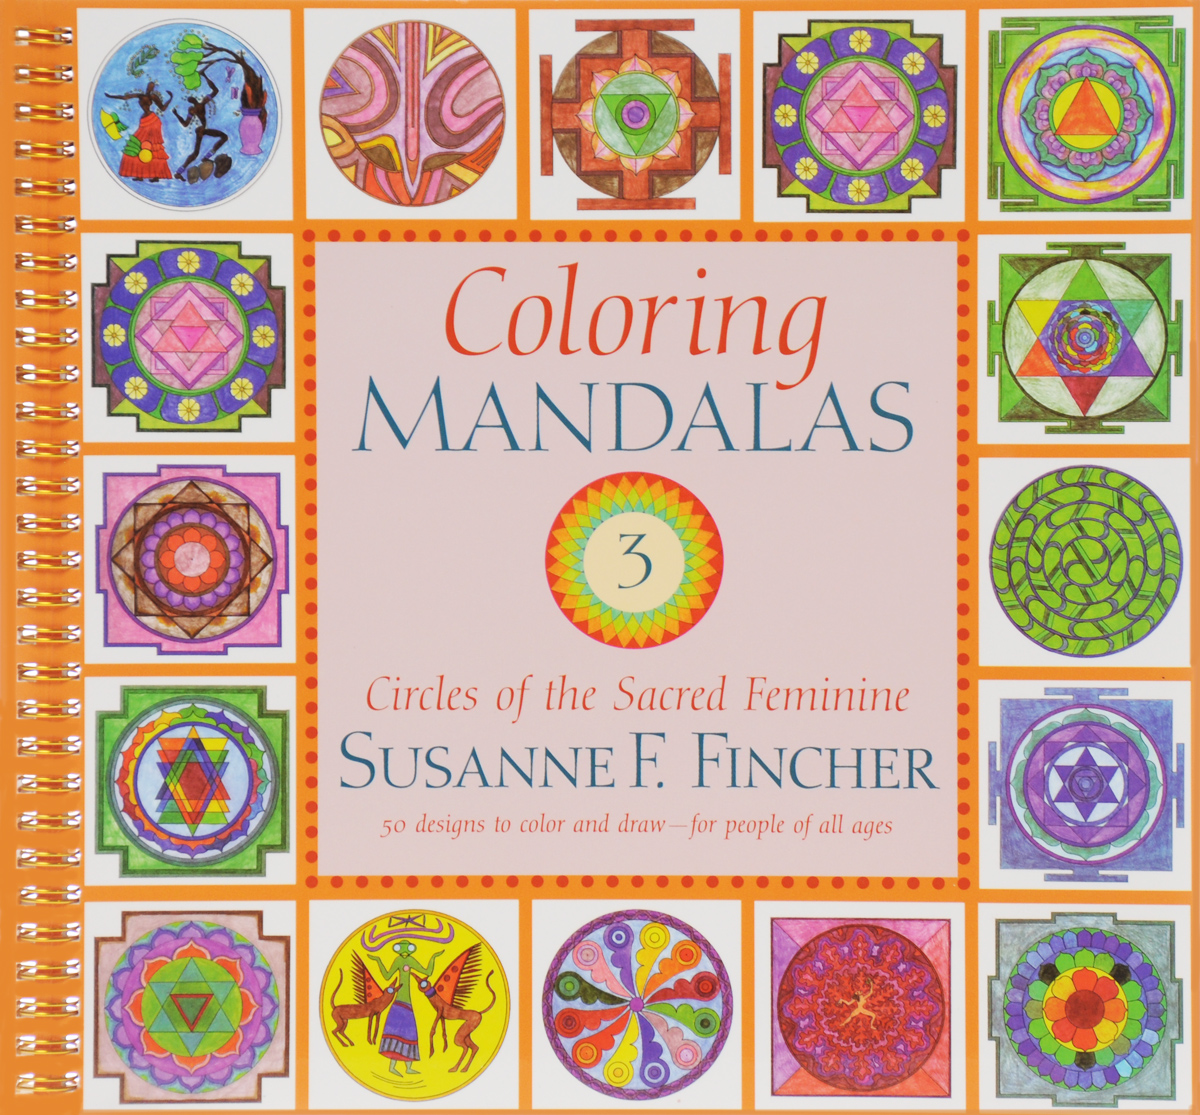 Coloring Mandalas 3: Circles of the Sacred Feminine coloring the sacred feminine